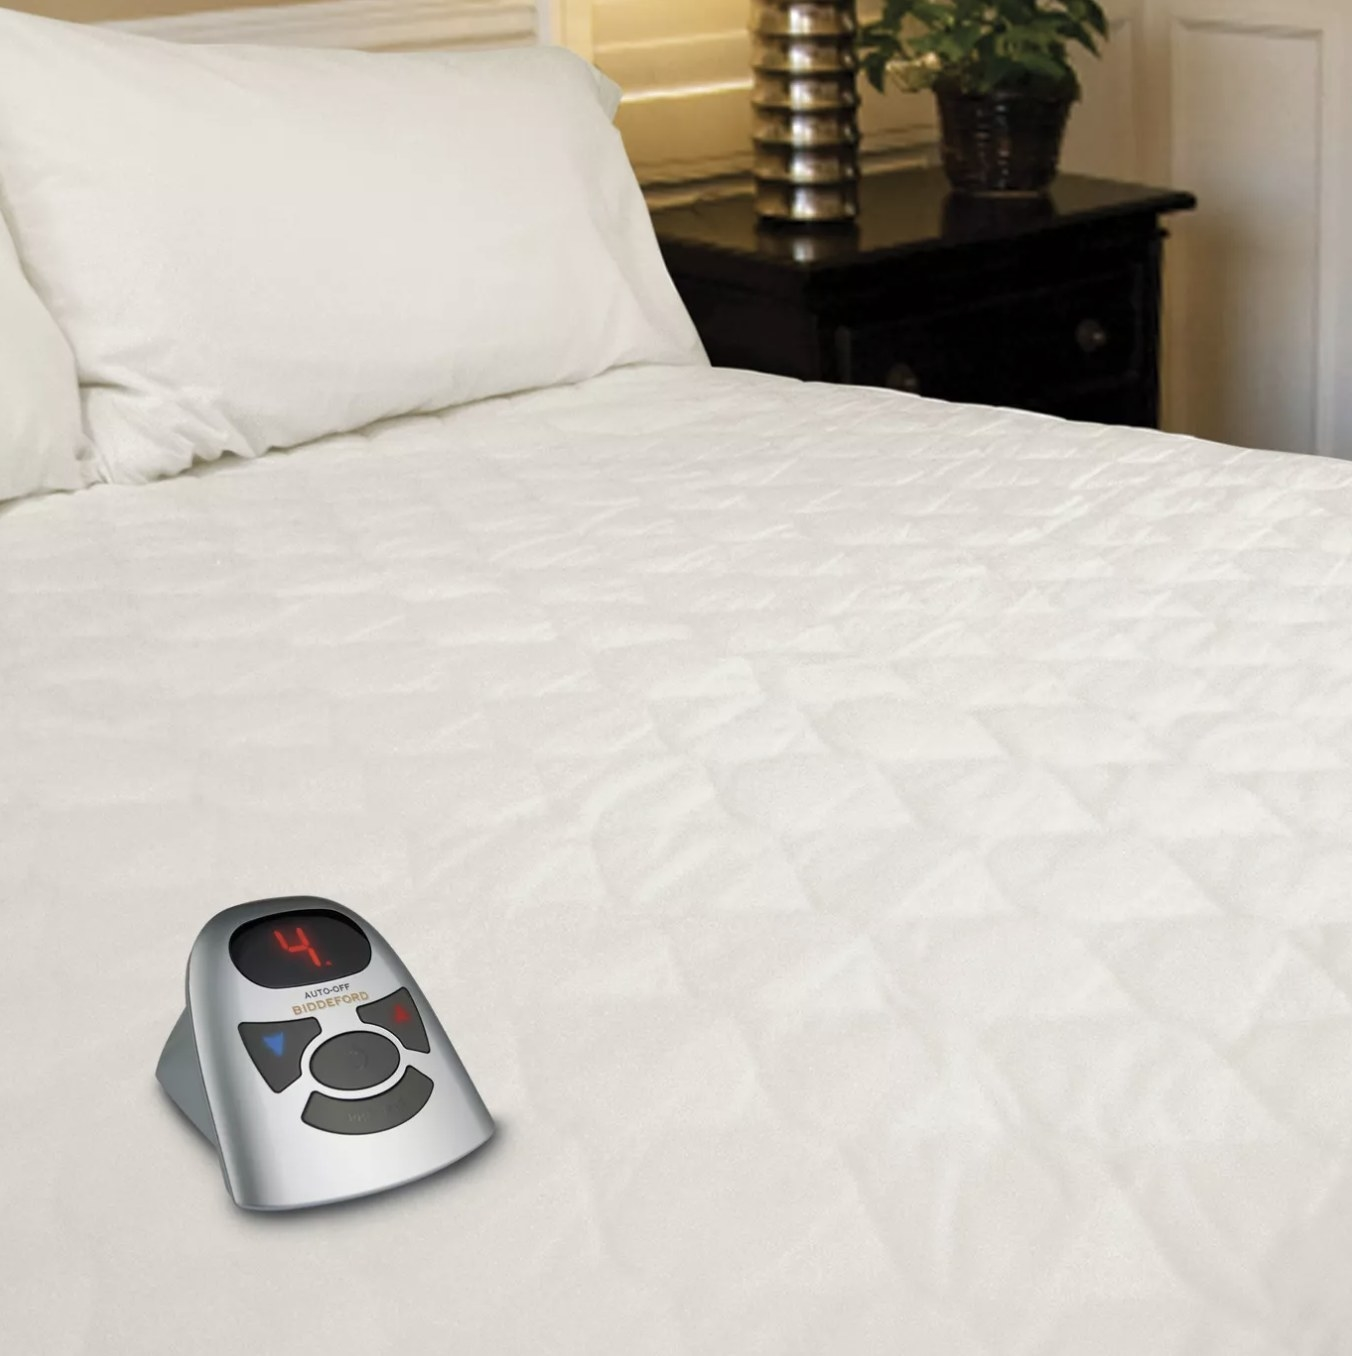 The heated mattress pad on a bed